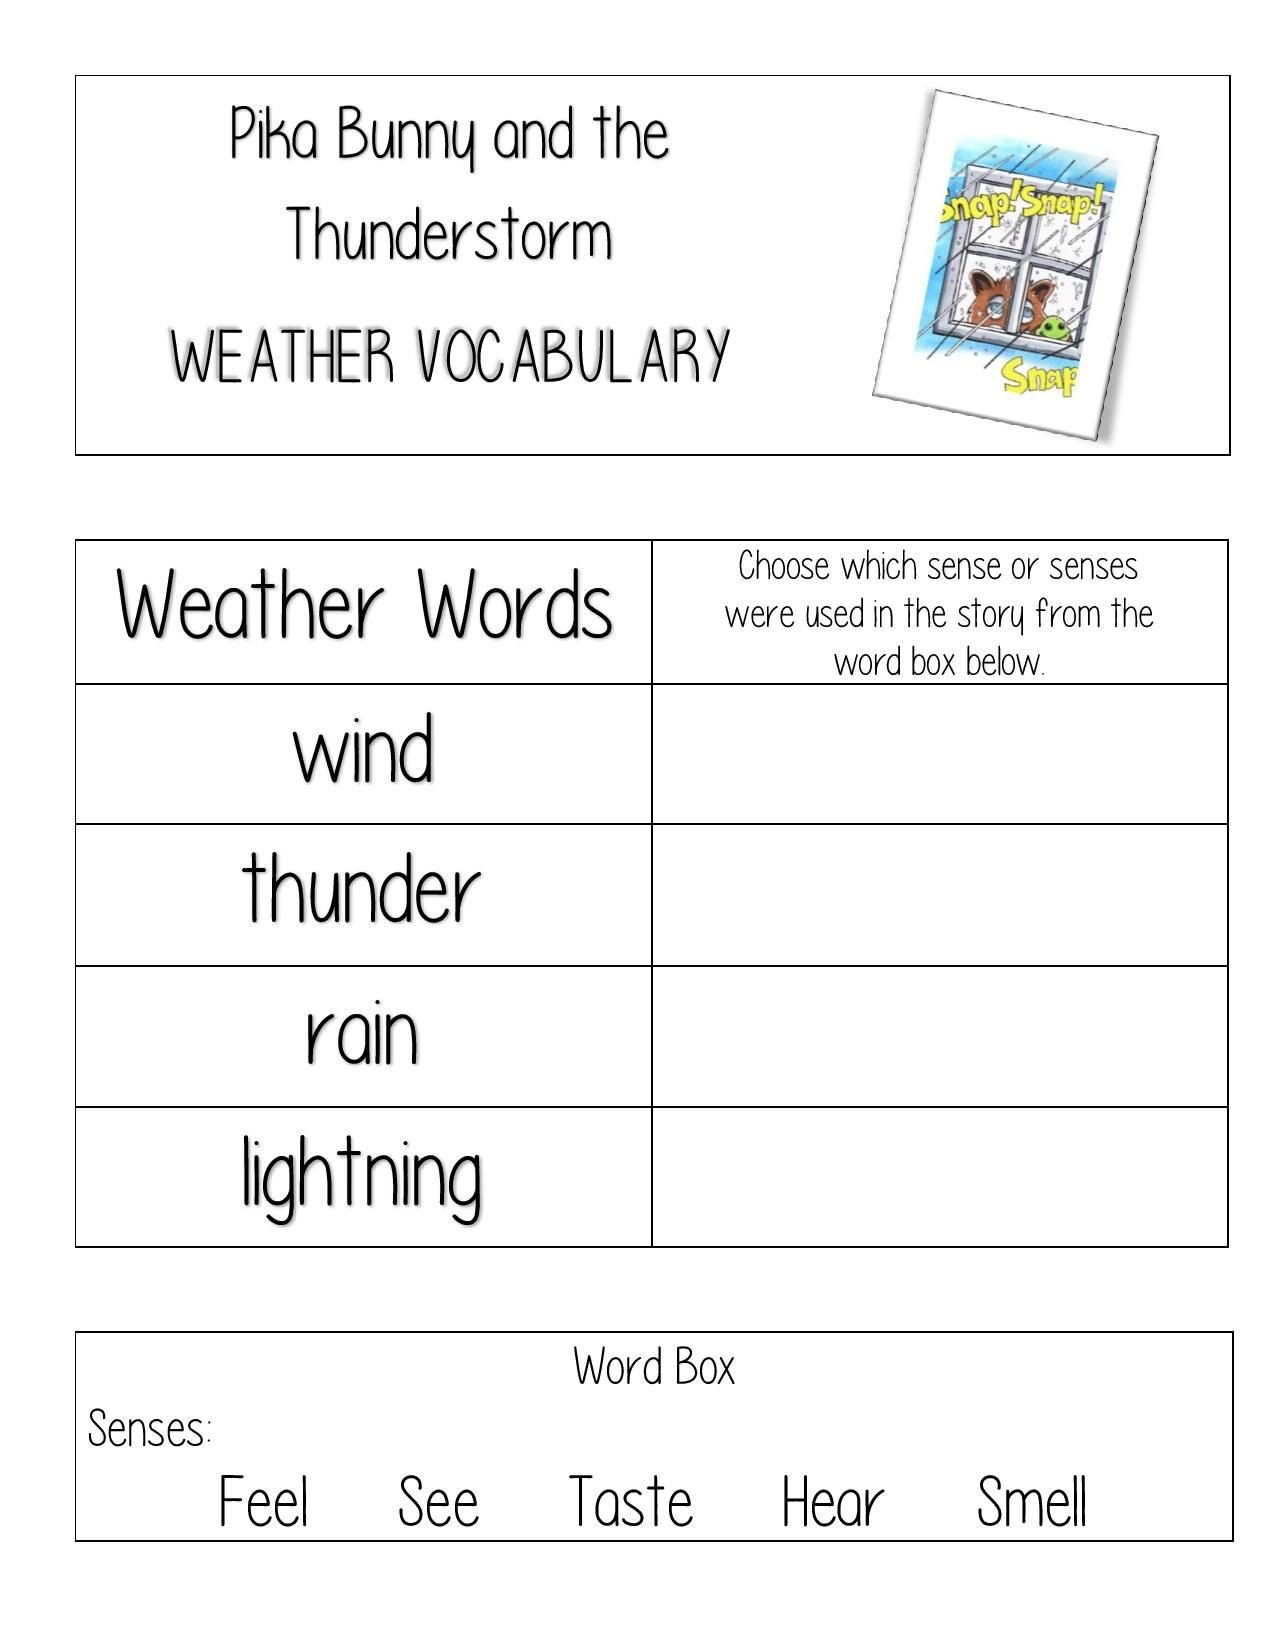 Weather Worksheets for 3rd Grade Free Weather Worksheet for Teachers and Homeschool for